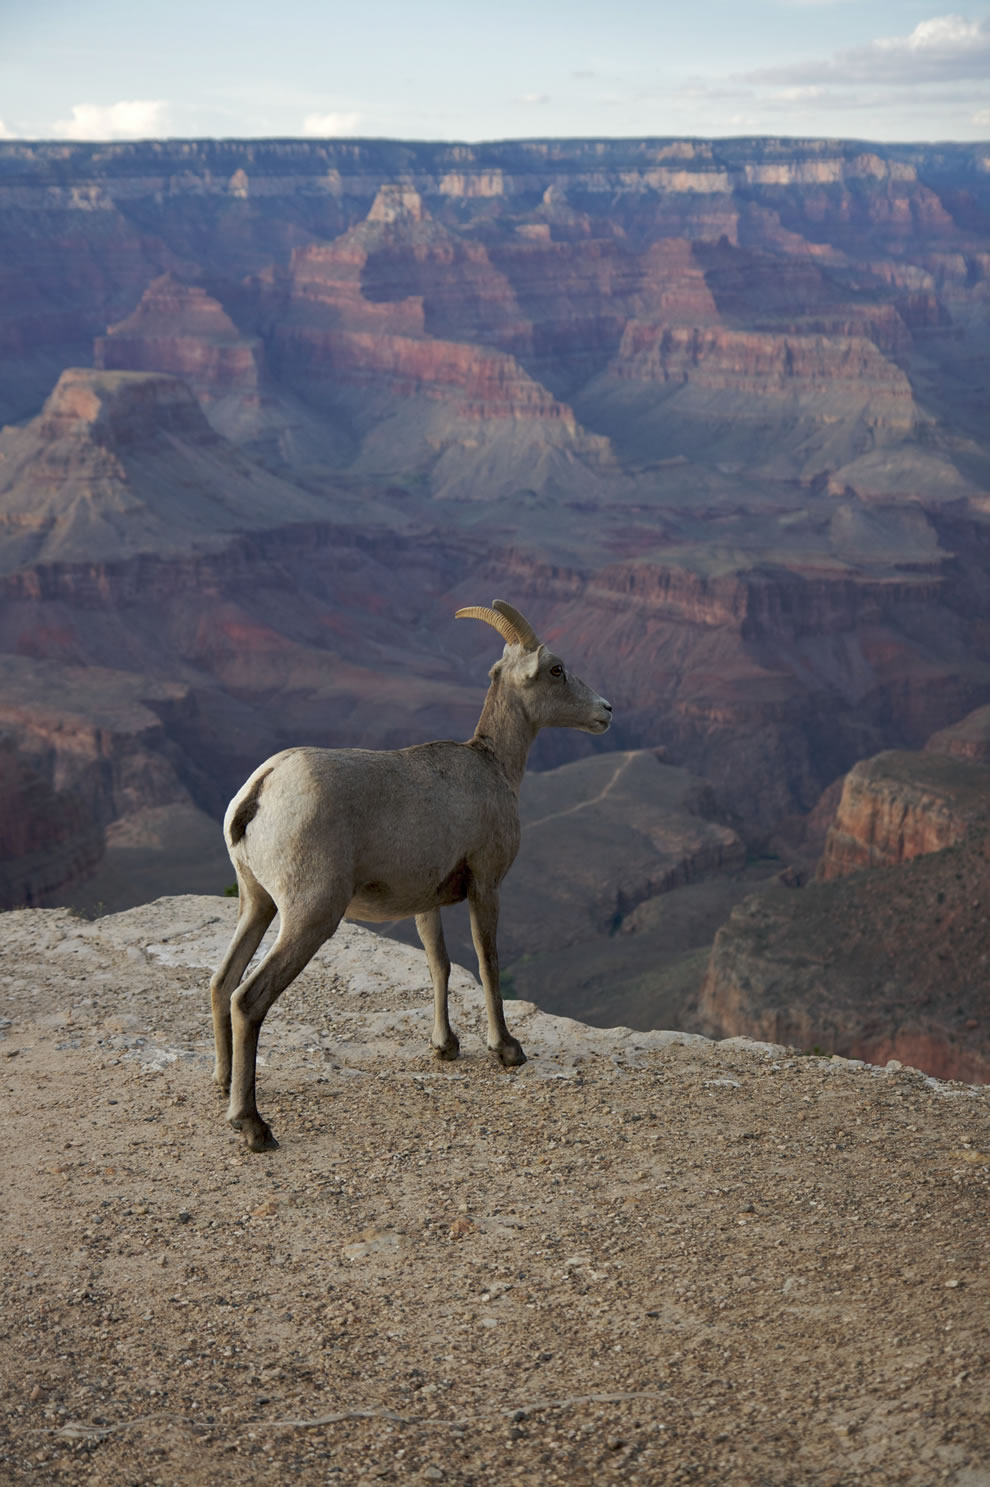 Mountain goat - Bighorn, Grand Canyon